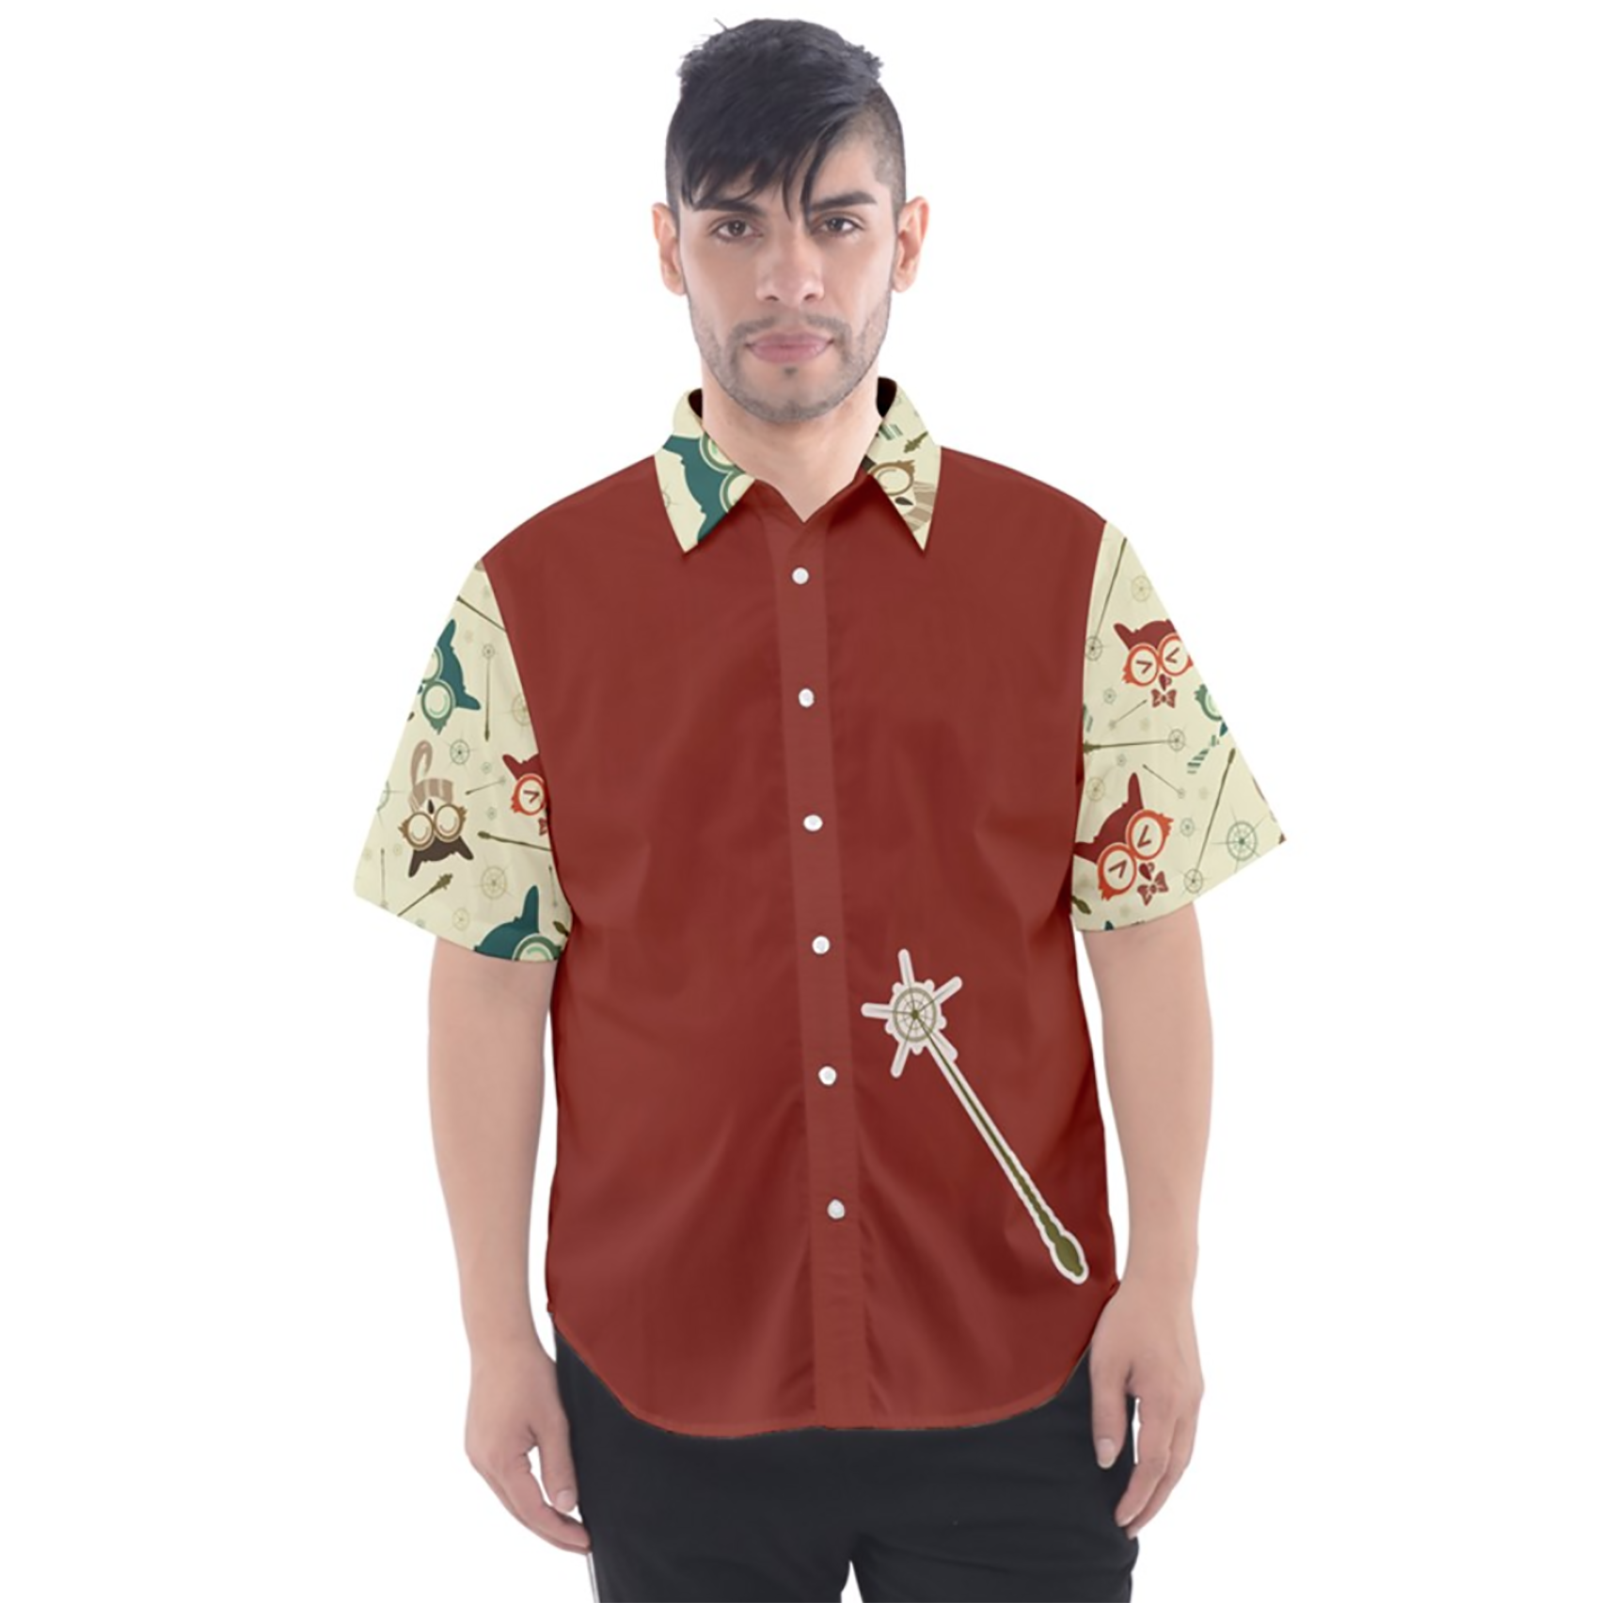 Vintage Emoji Owl Button Up Short Sleeve Shirt (Red Solid Background)